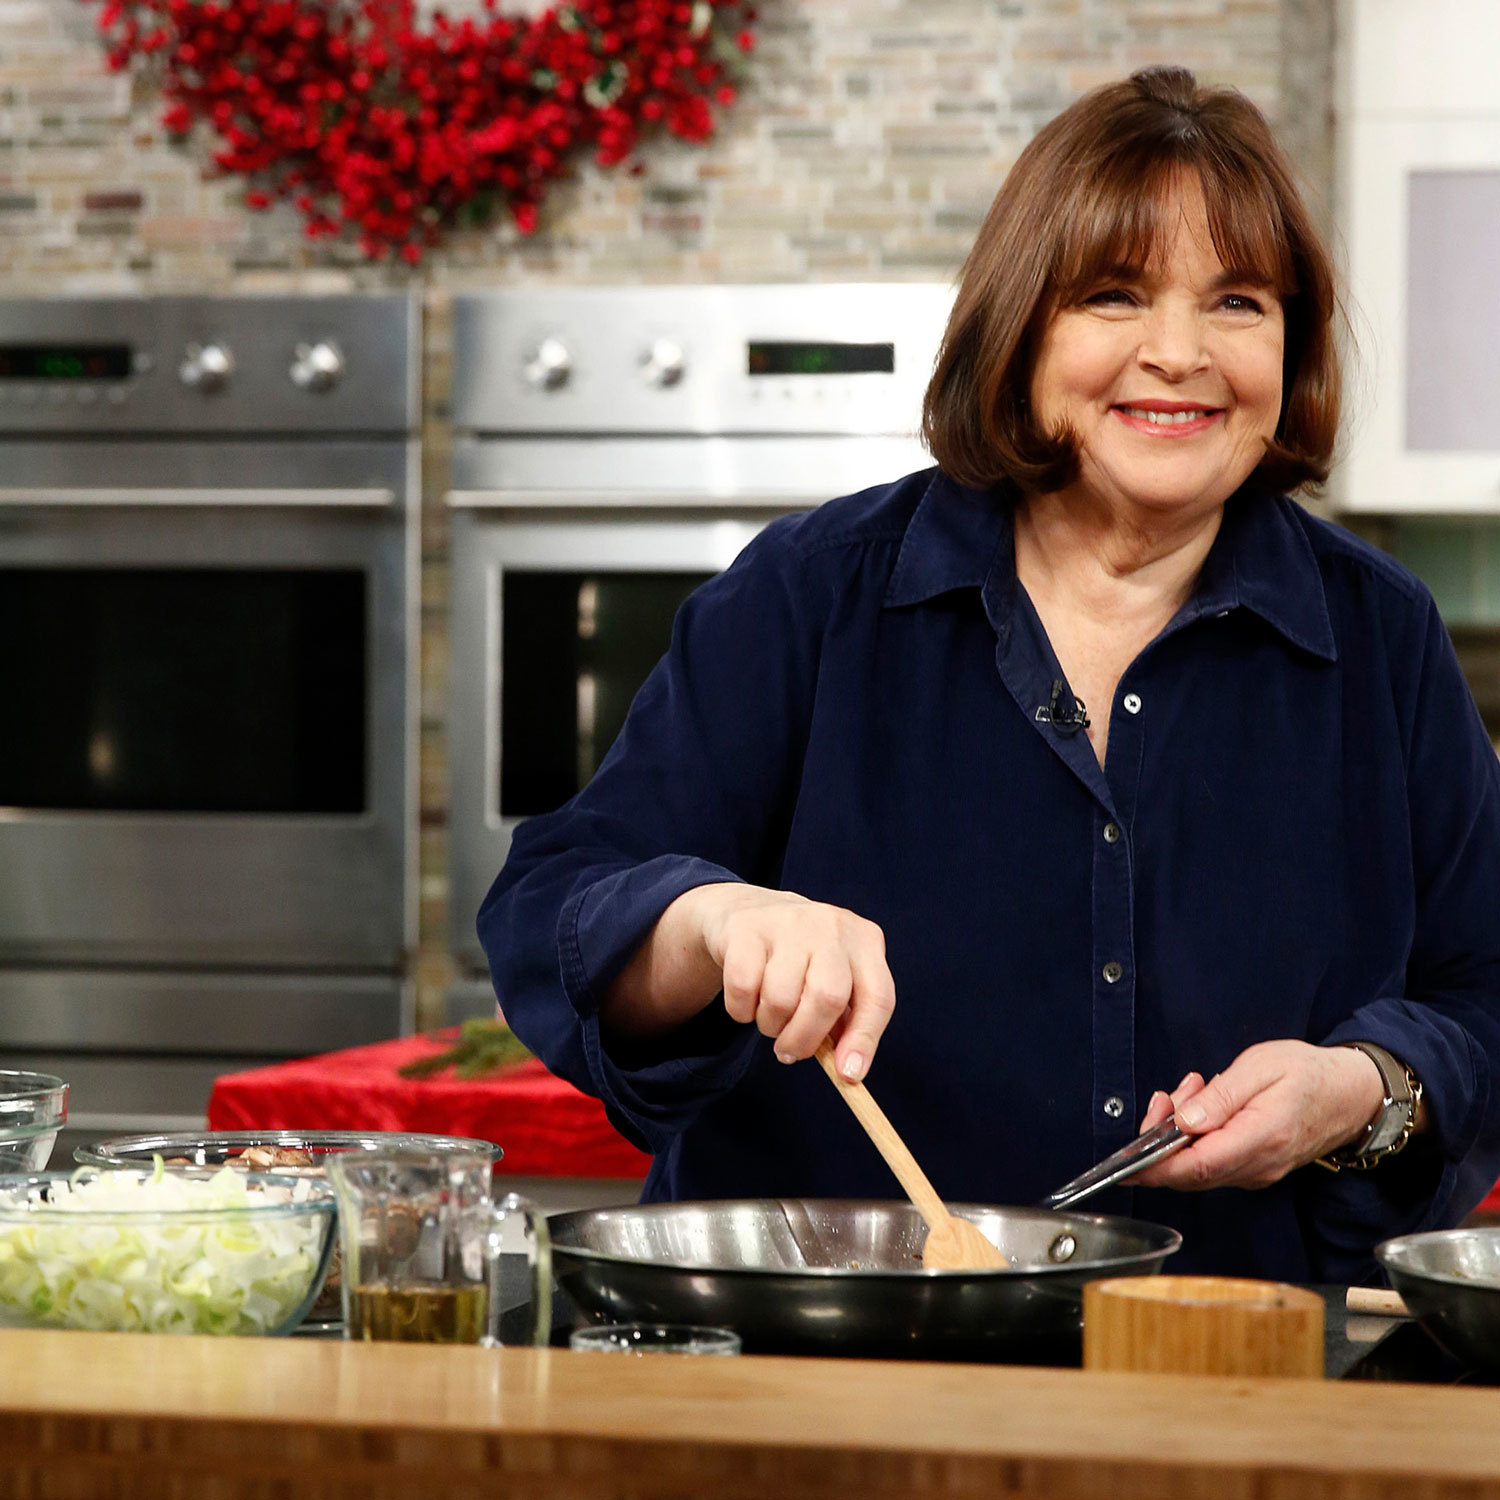 Ina Garten Cooking